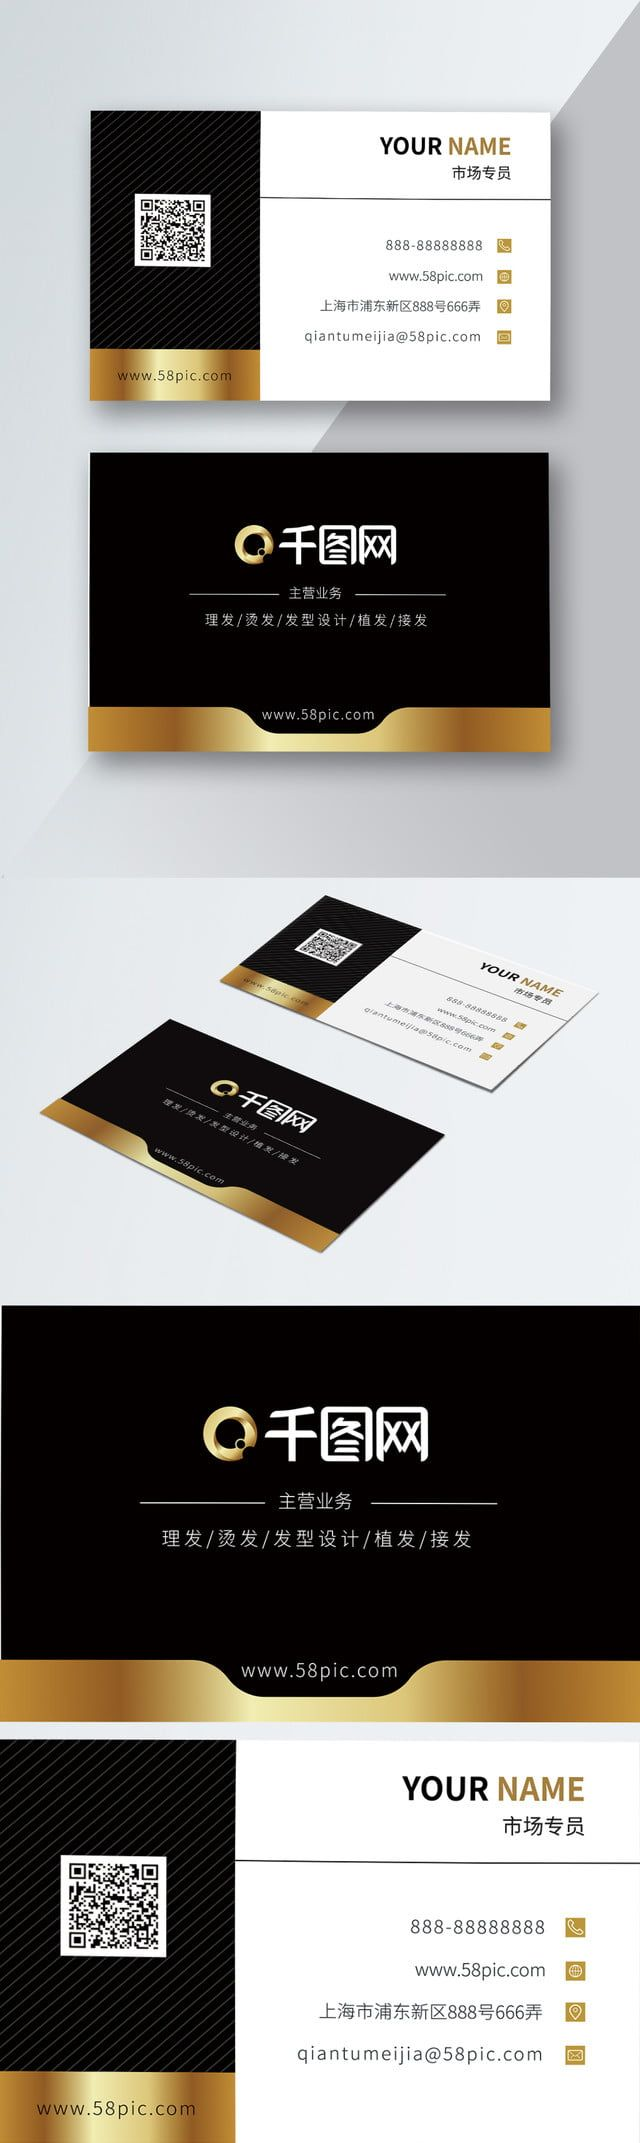 Hairdressing Agency Business Card Picture Haircut Business Within Hairdresser Bus Agency Business Cards Hairdresser Business Cards Free Business Card Templates